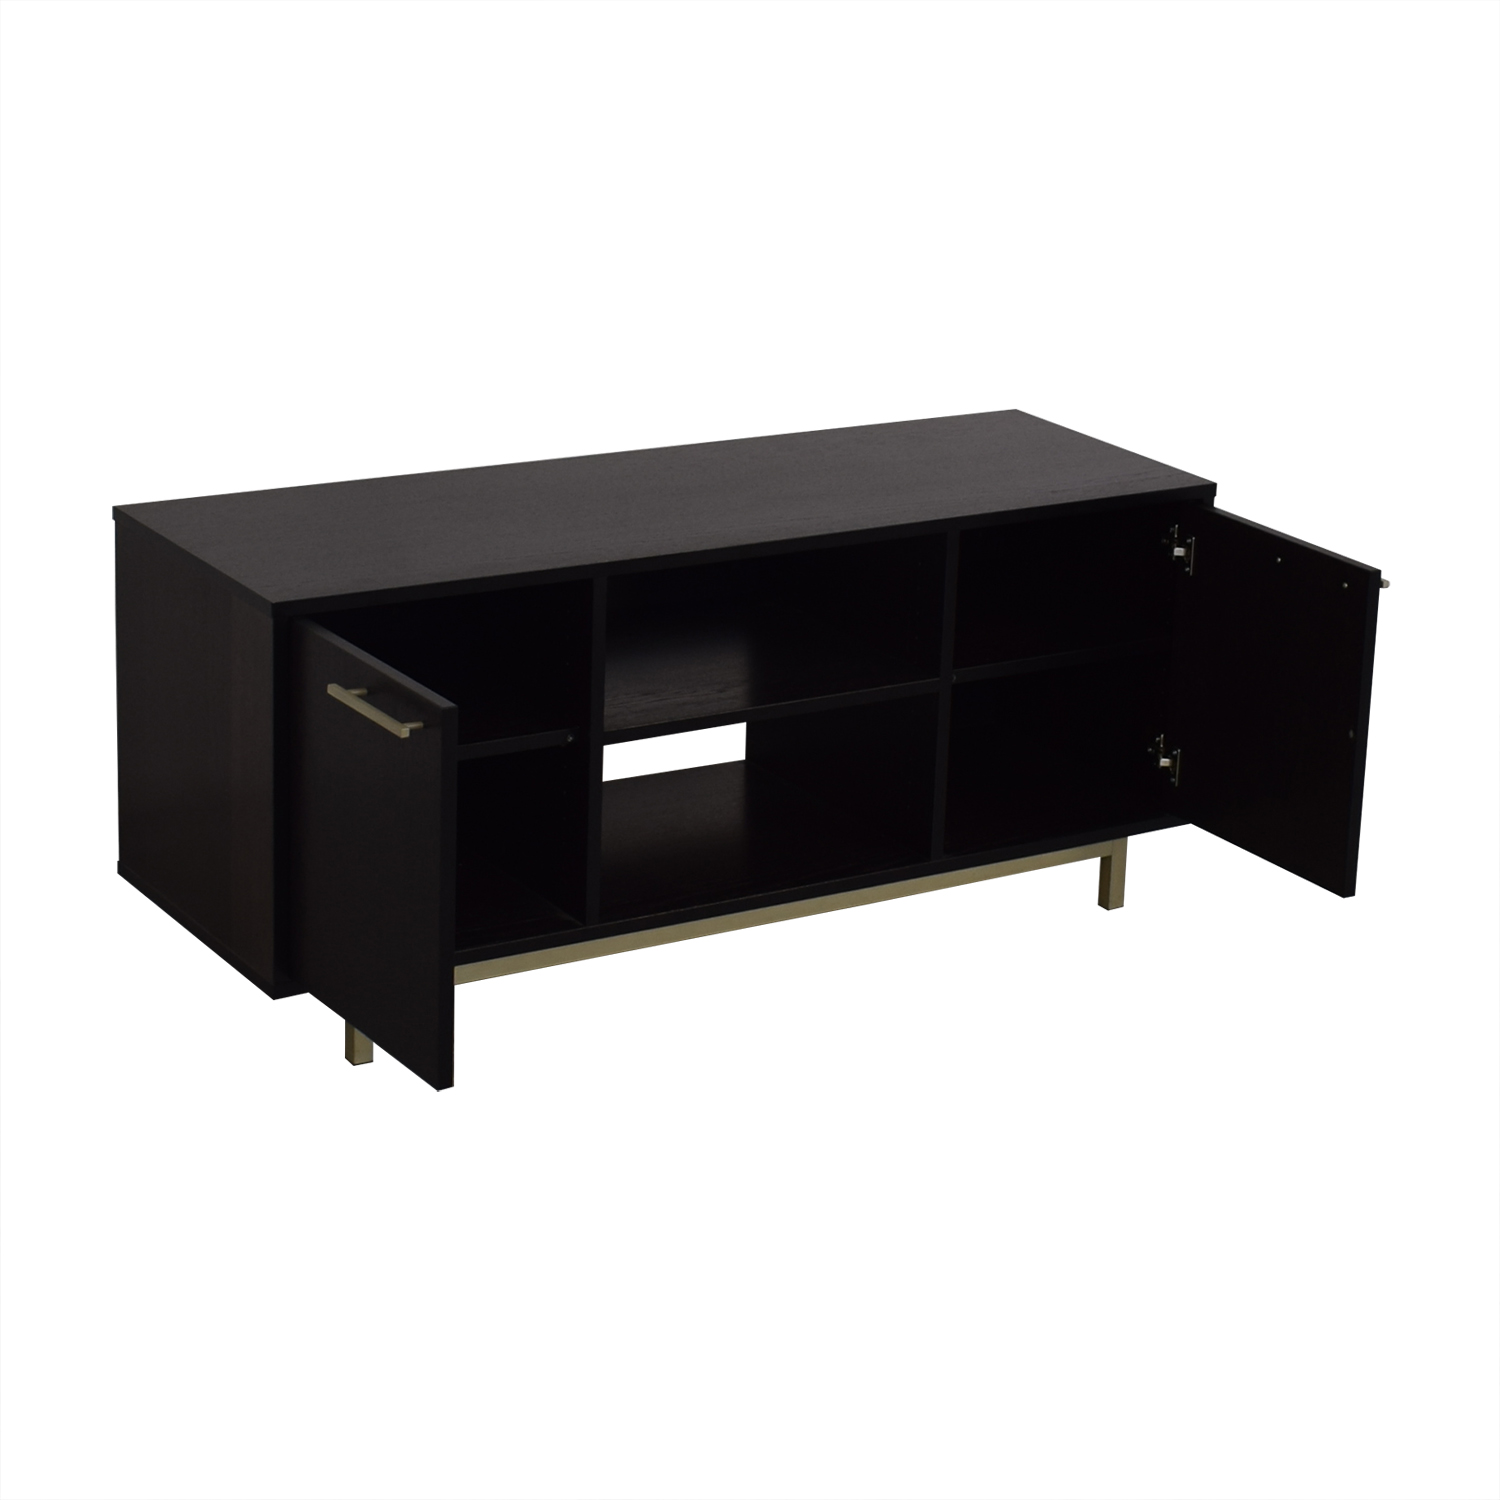 Crate & Barrel Crate & Barrel Media Console black